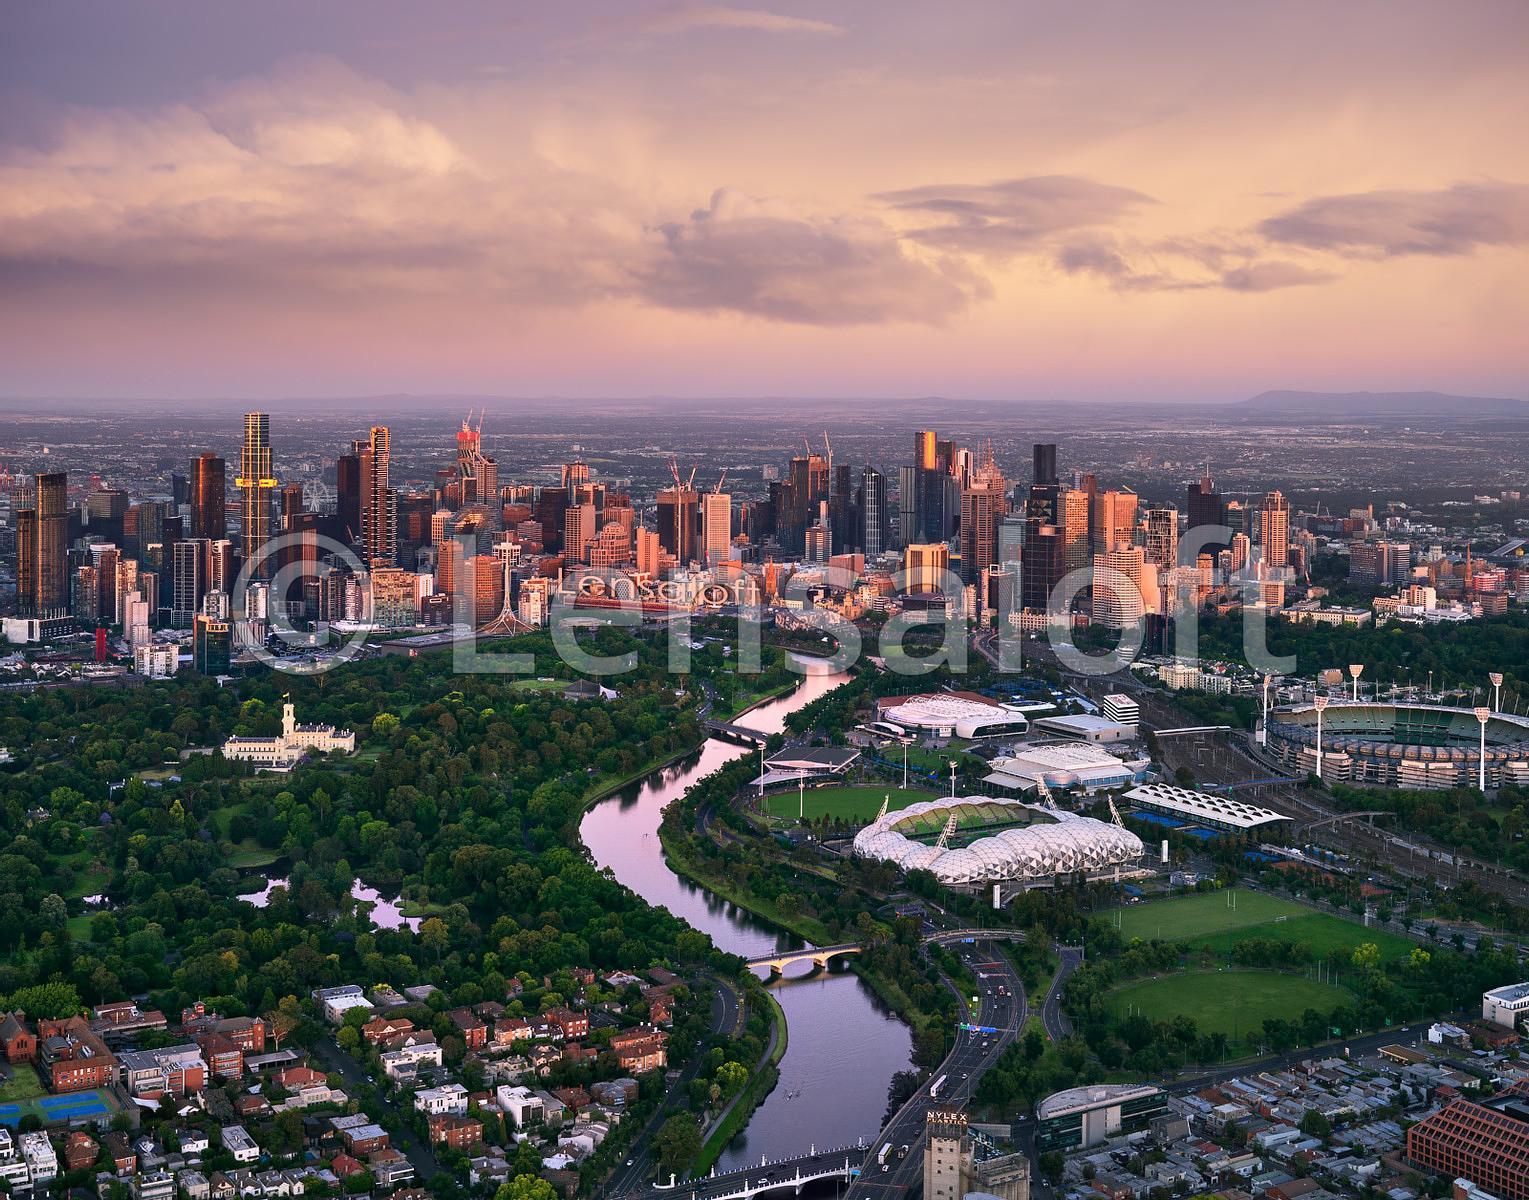 Sunrise Reflections - Melbourne 2020